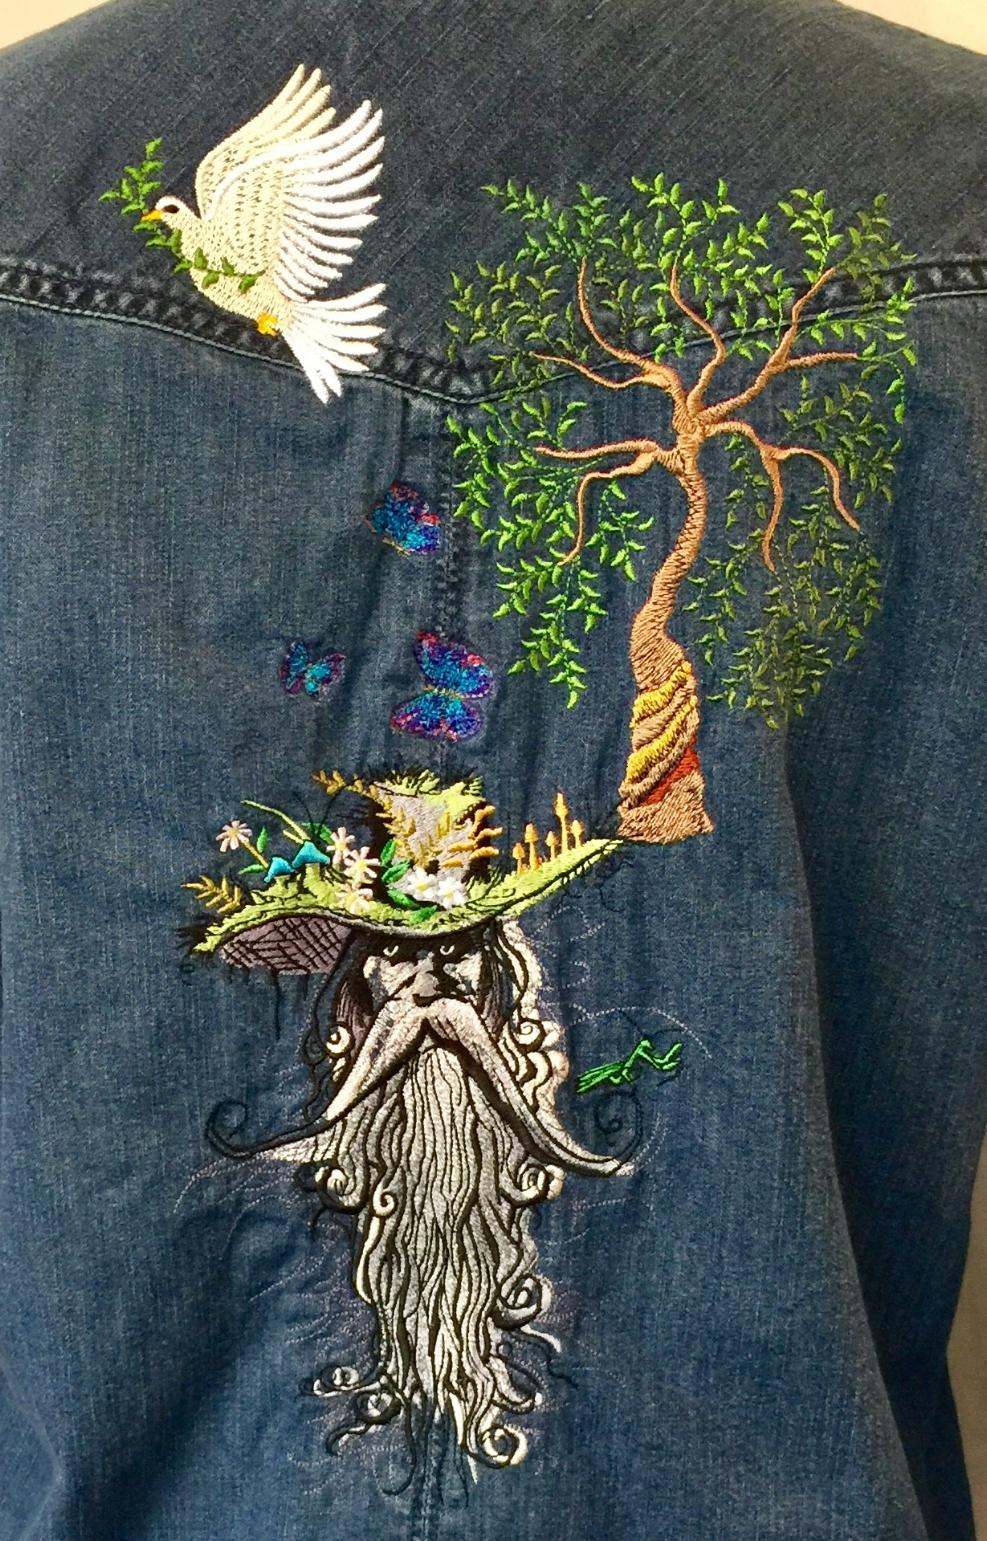 Embroidered jeans shirt with Root man design